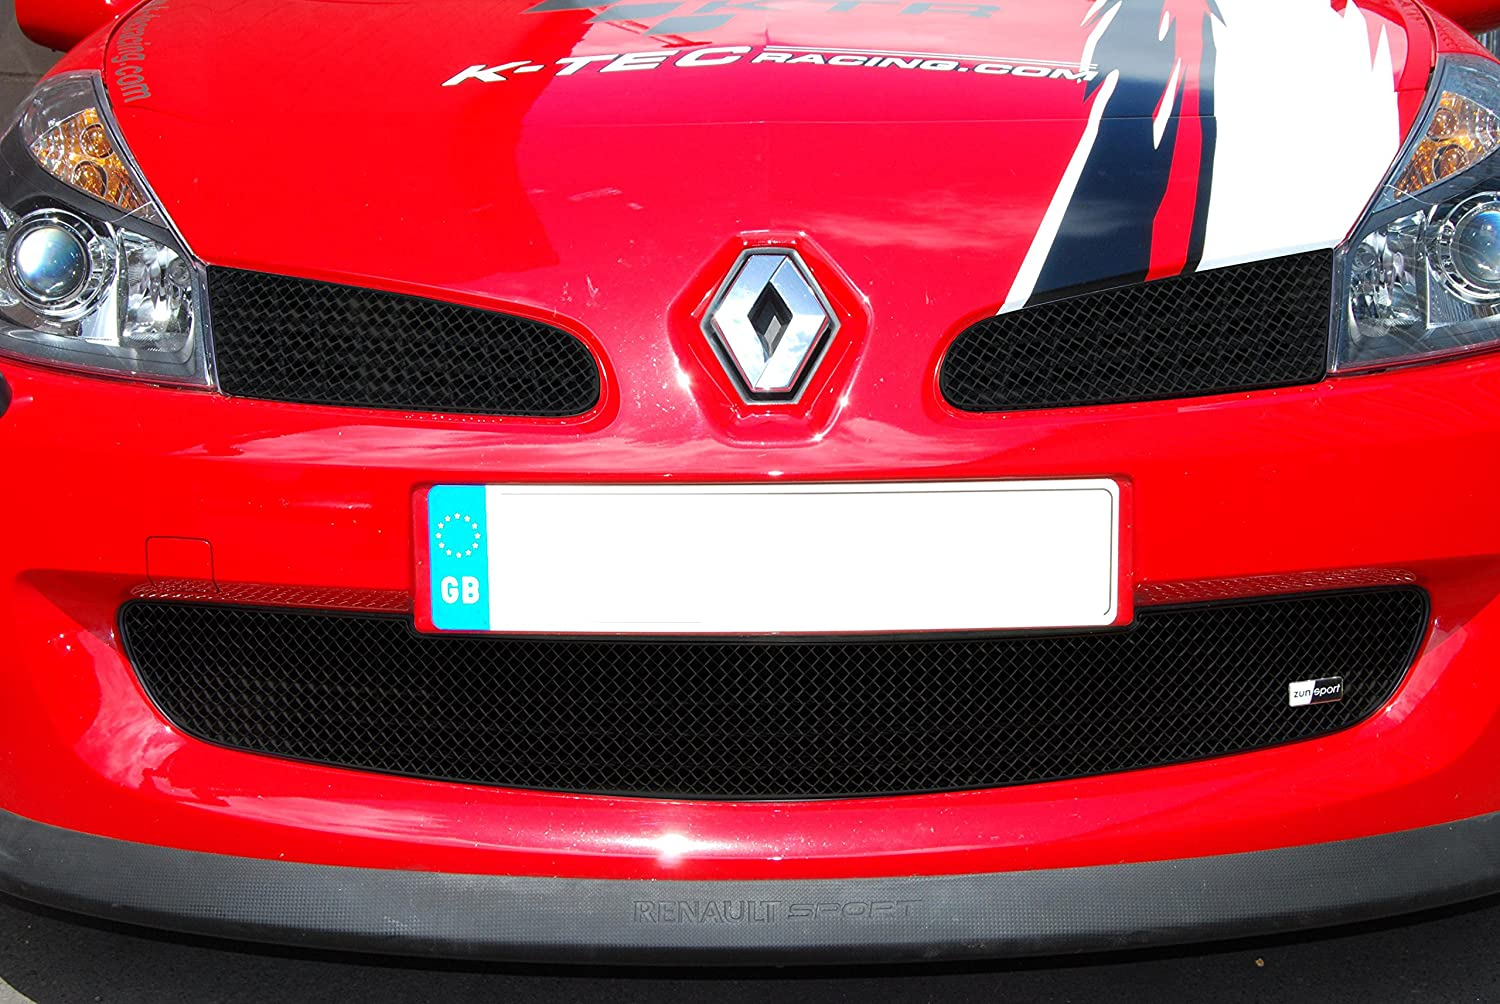 RS carbon effect 2005-2008 197 Diamond Performance Renault Clio 3 carbon effect badge covers front and rear,